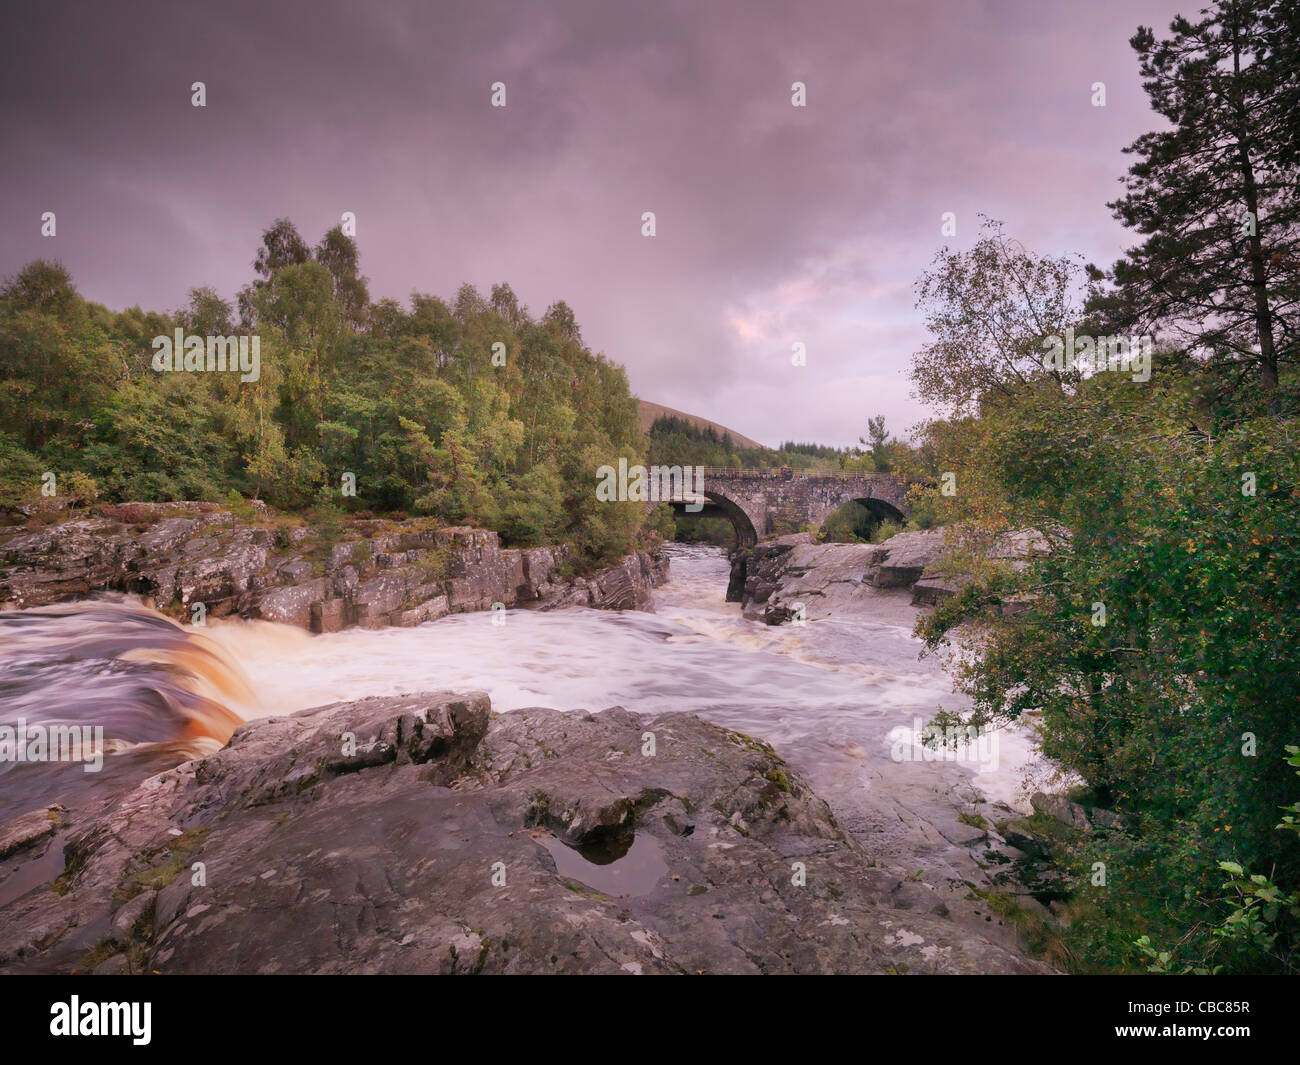 River rushing over boulders - Stock Image